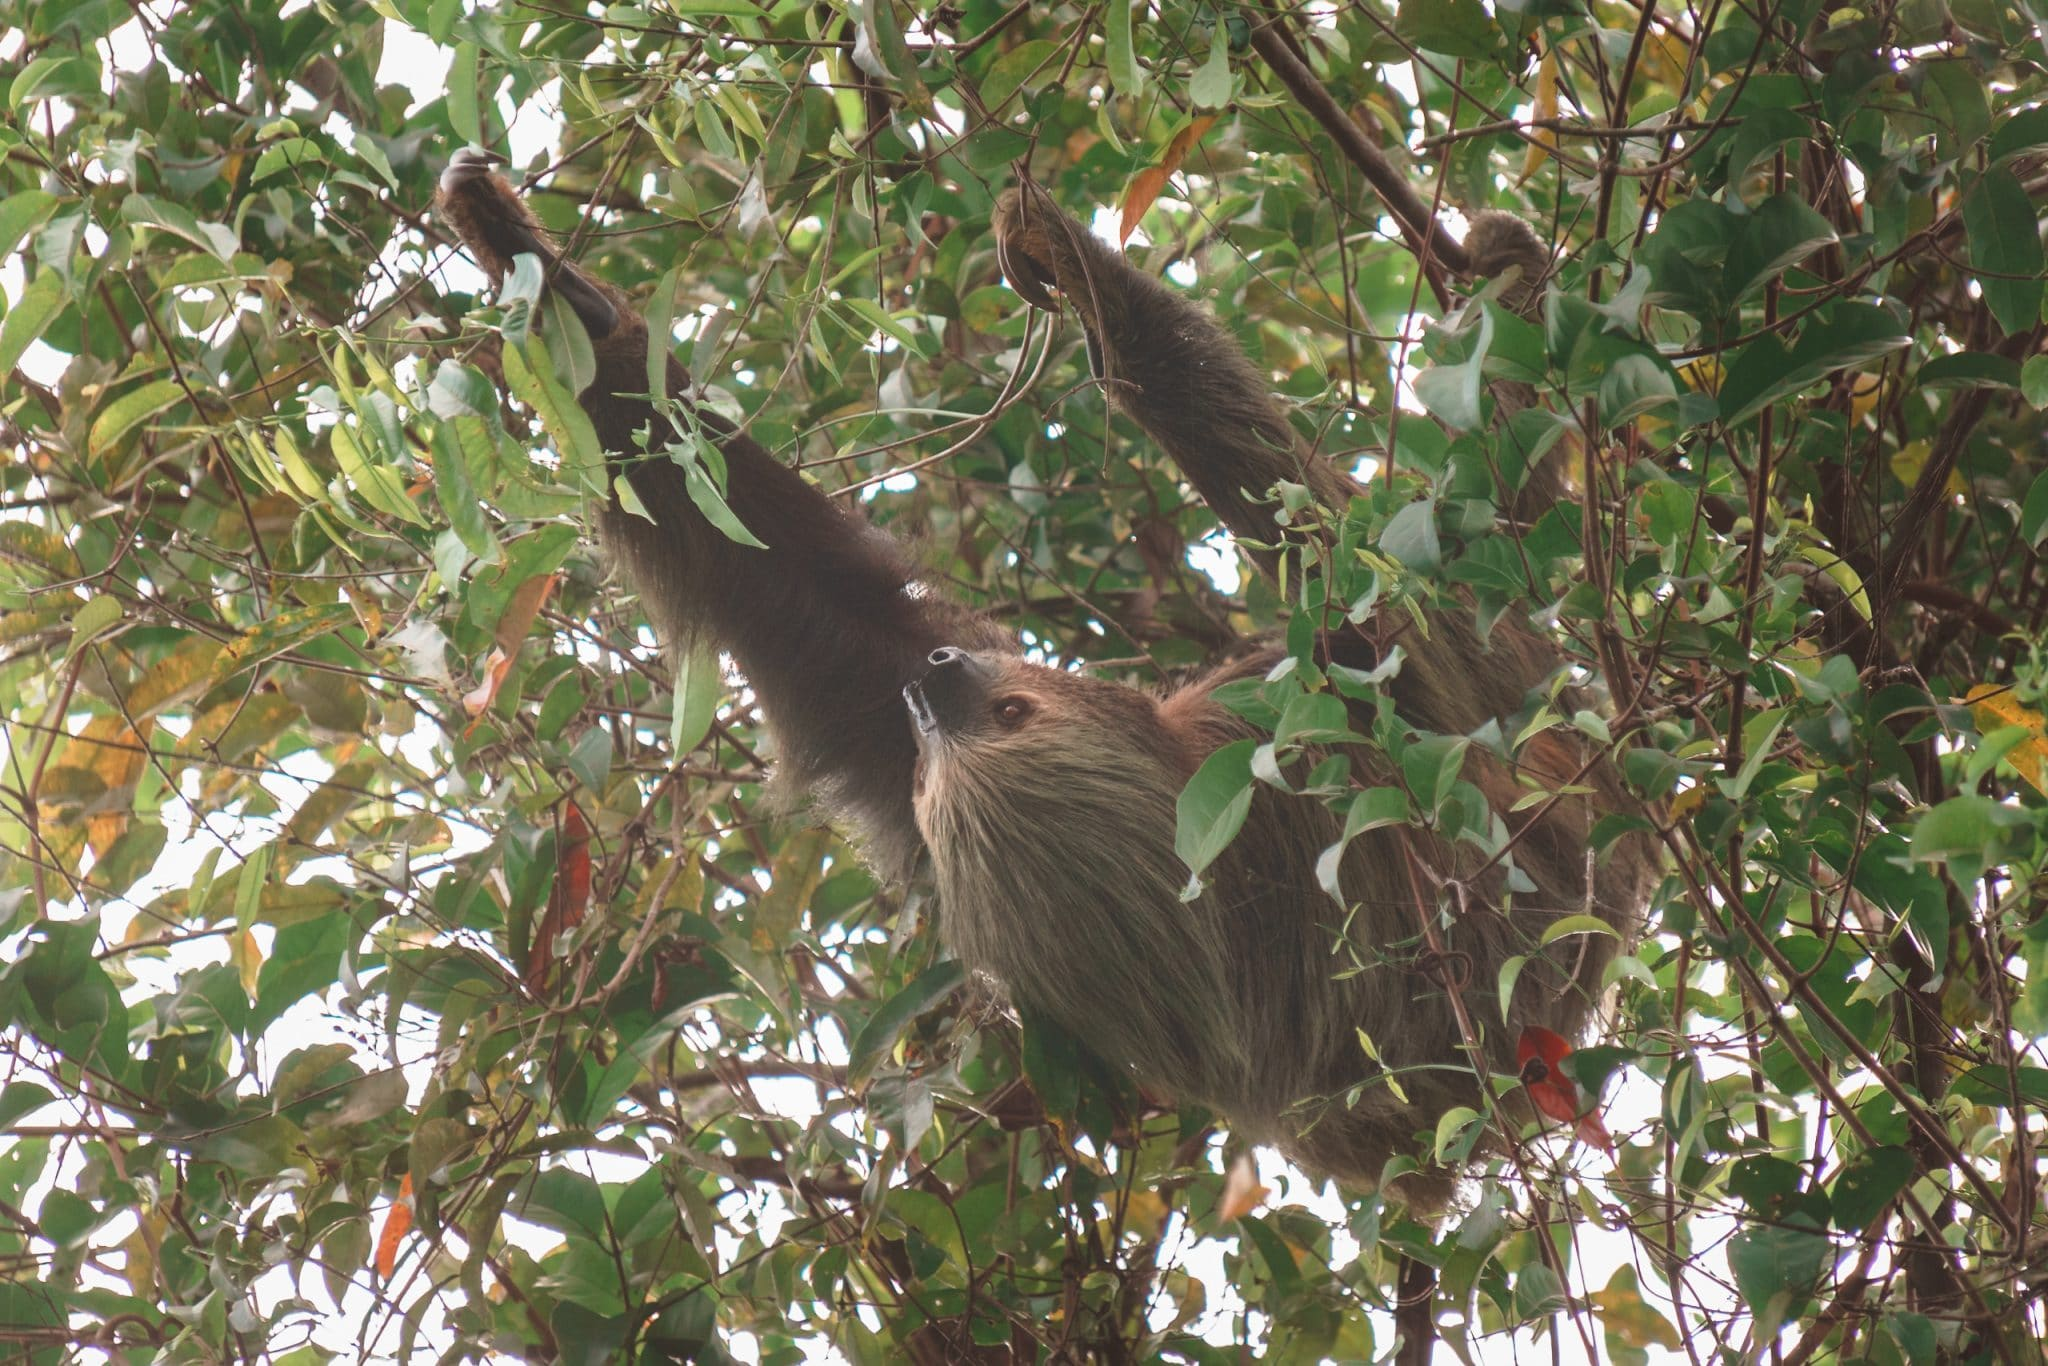 sloth in the amazon photographed from a boat